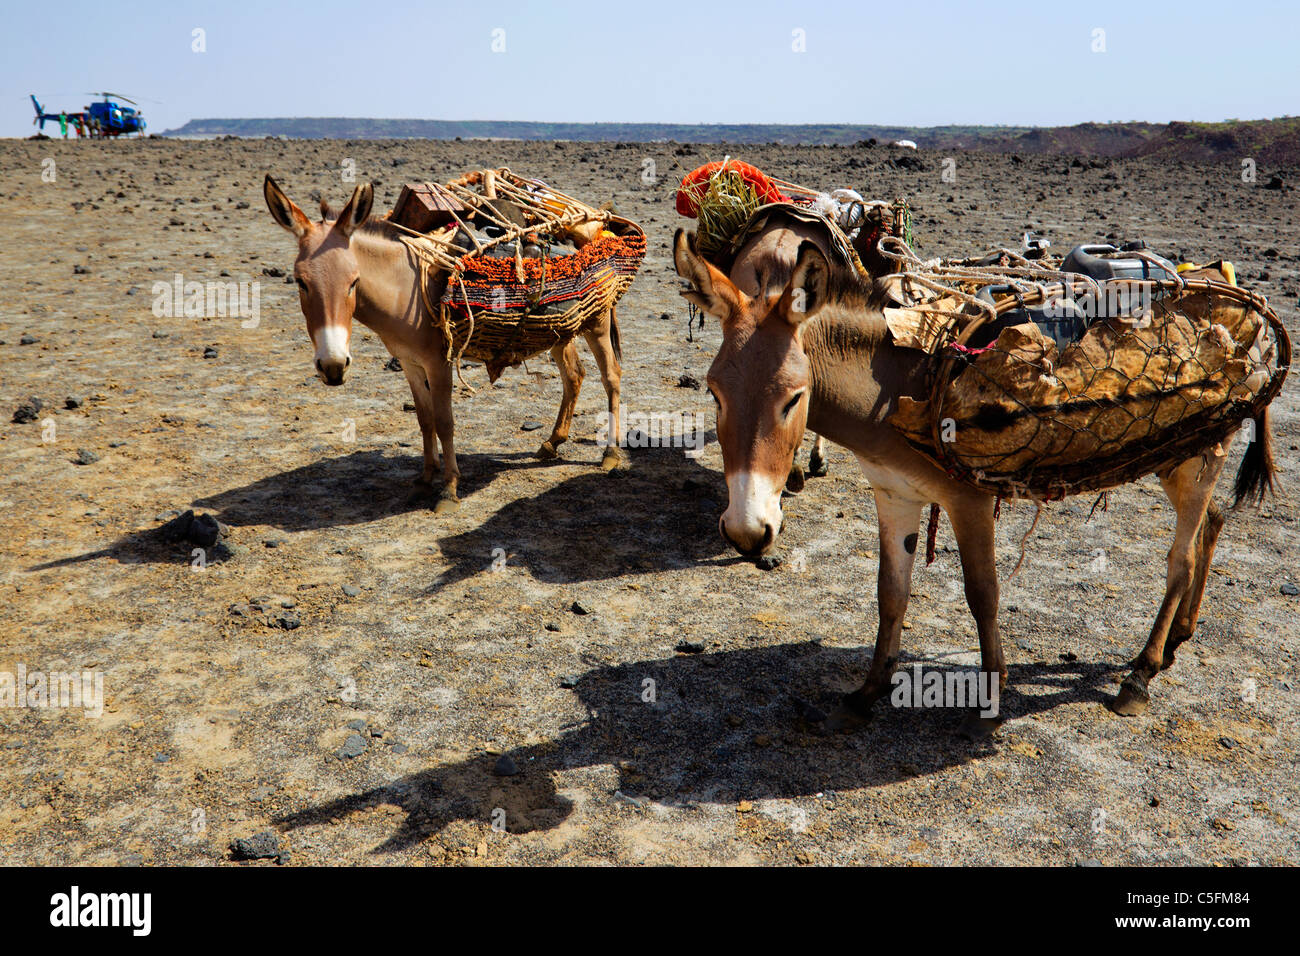 Donkeys at the Koroli springs in the Chalbi desert north of Kenya near the border with Ethiopia. Kenya - Stock Image